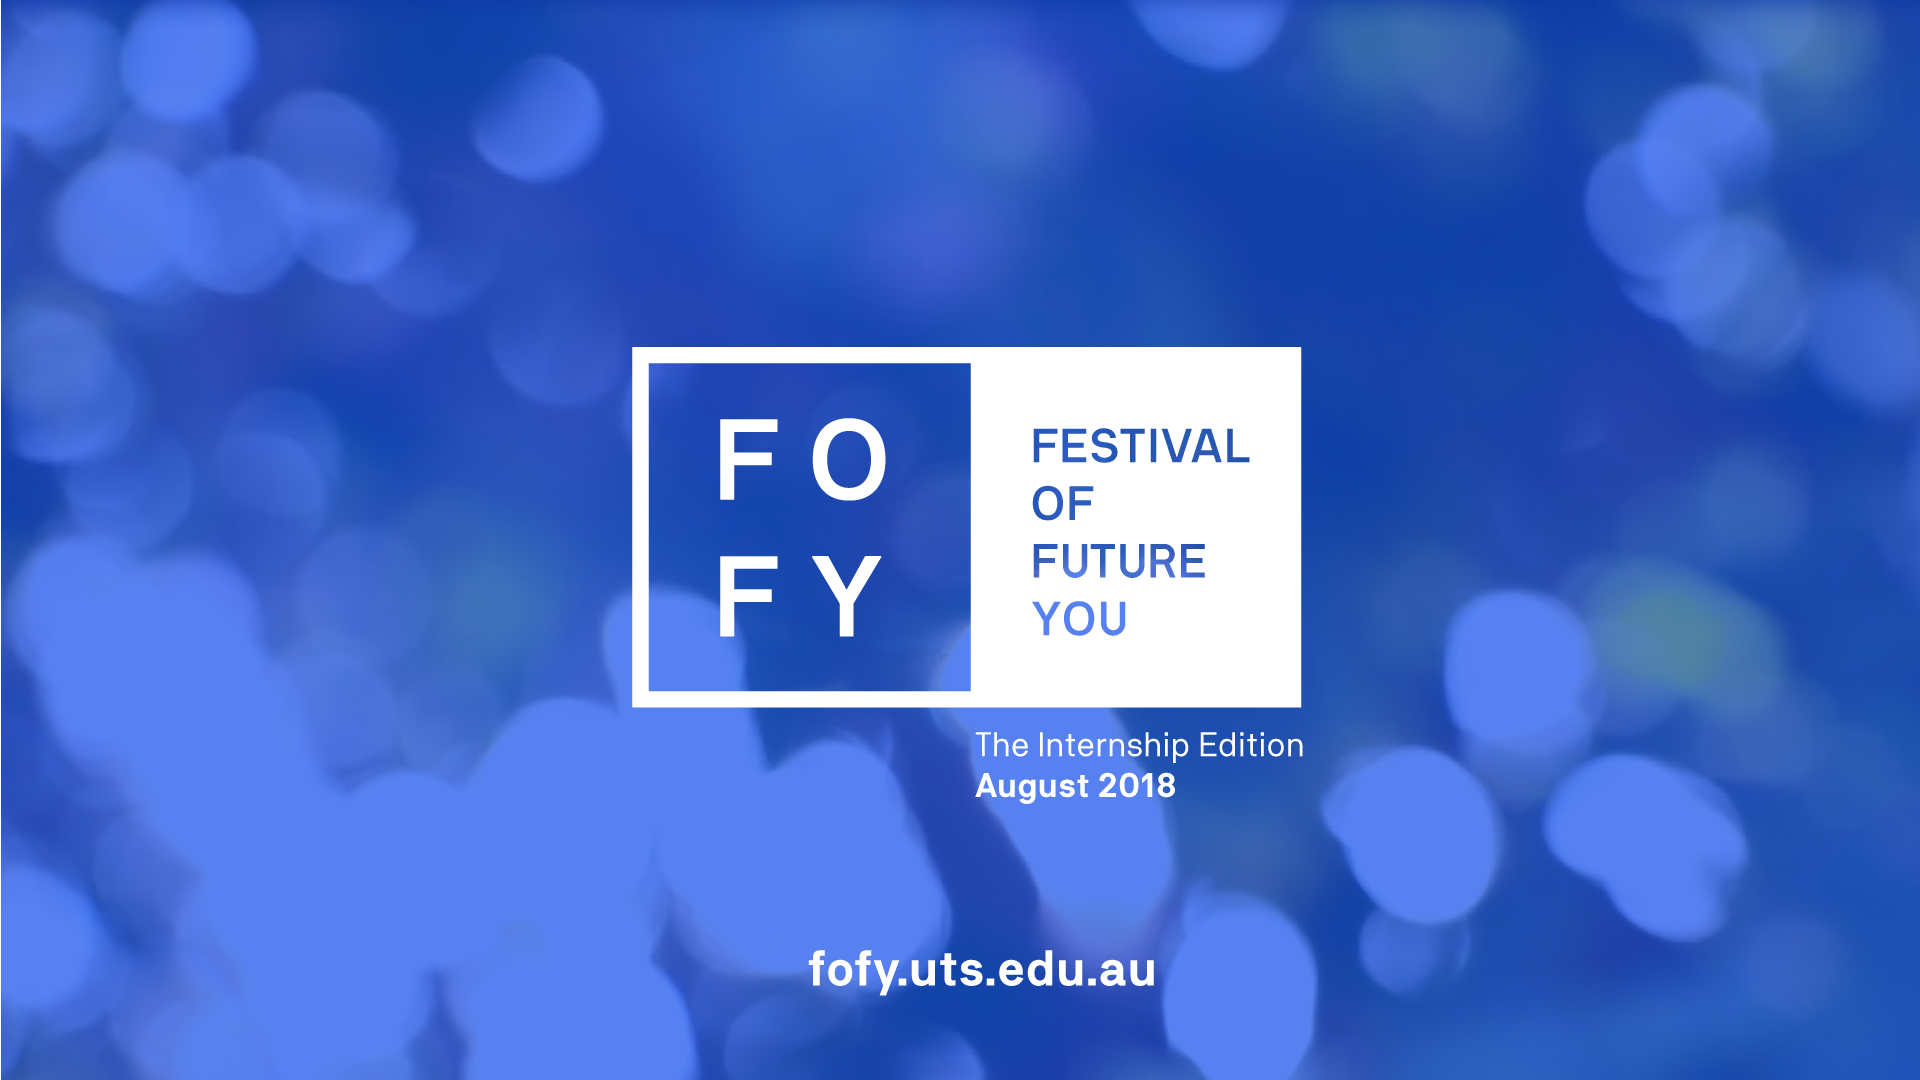 Get involved with the Festival of Future You